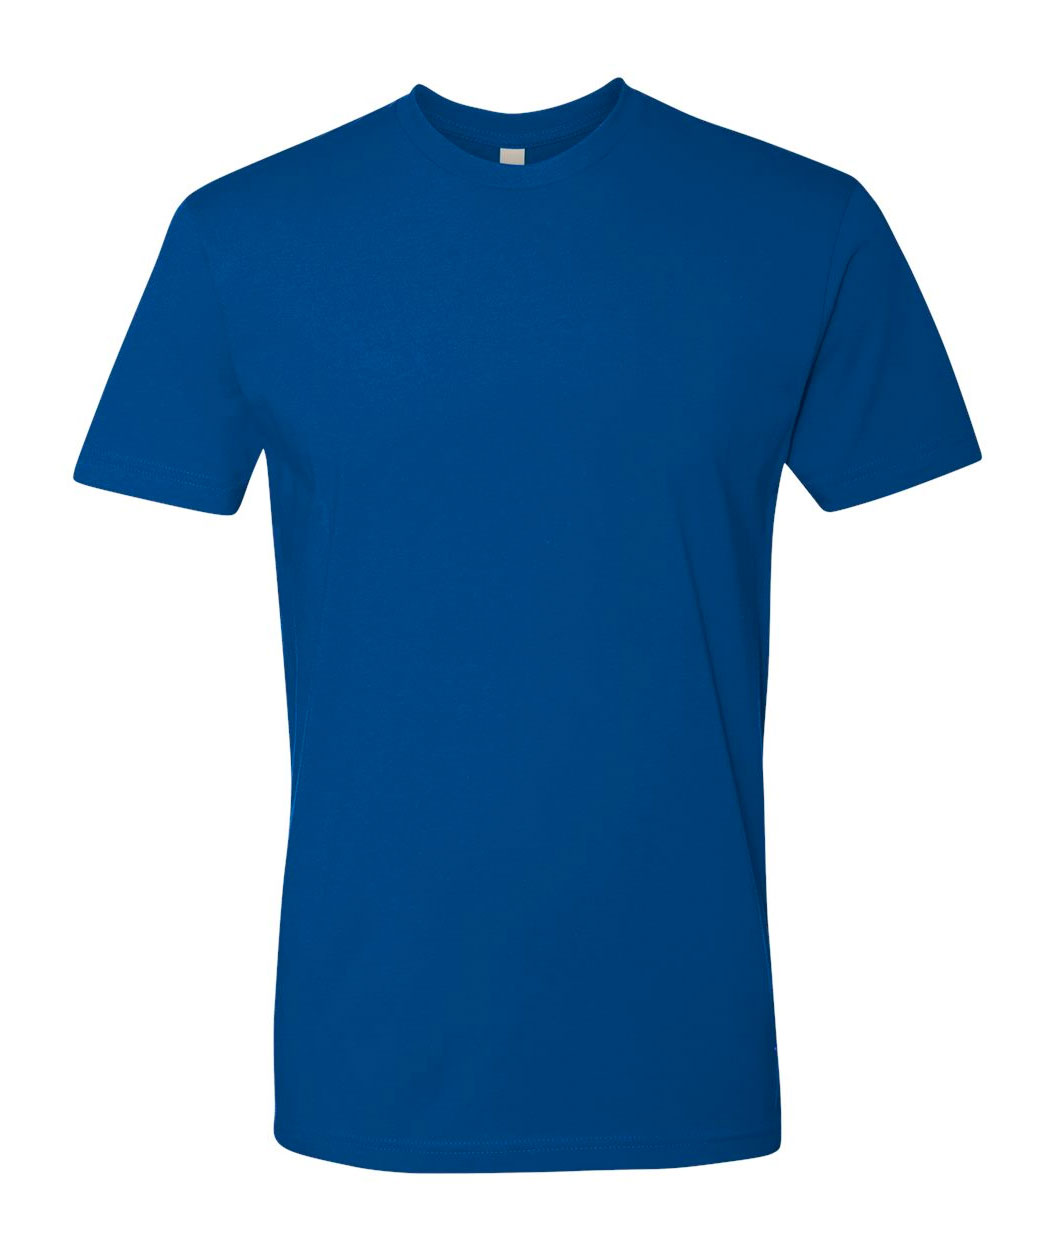 Next Level USA Mens Premium Cotton Crew Tee